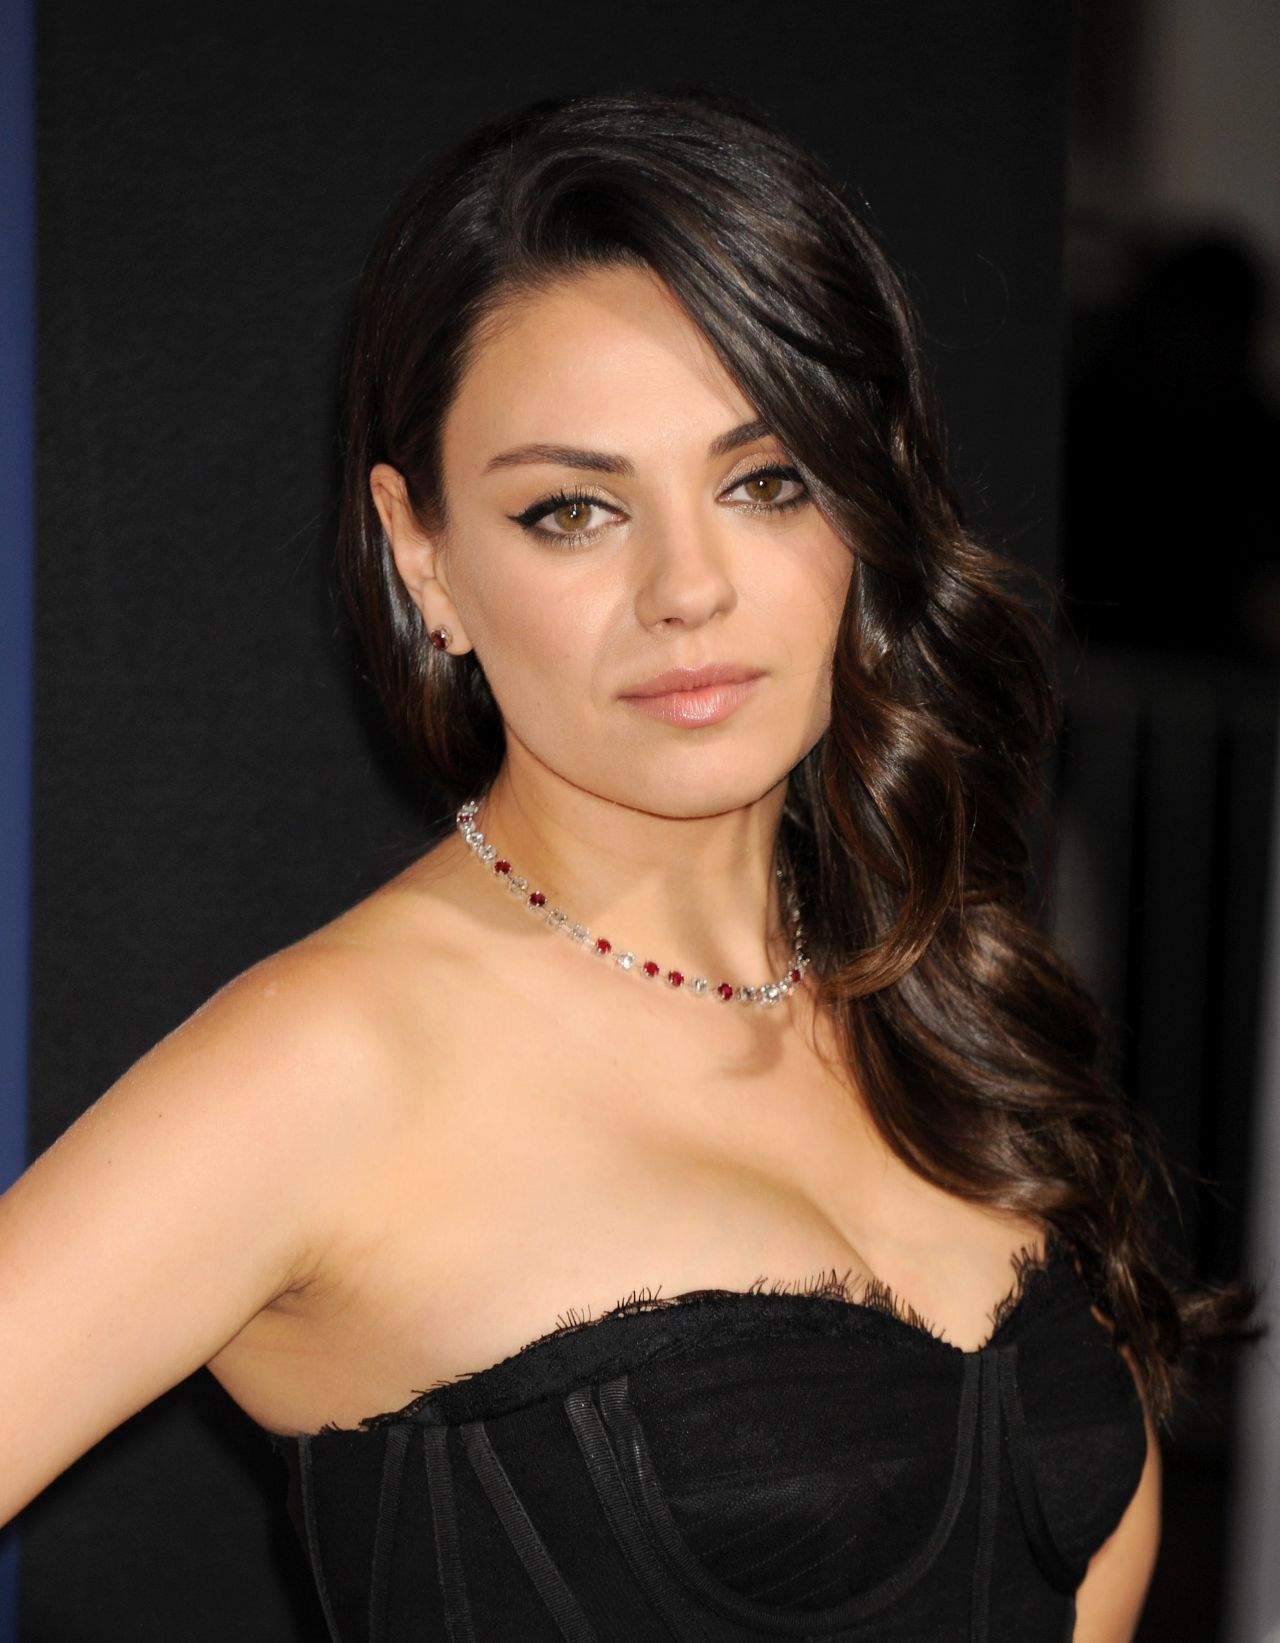 Mila Kunis - 'Jupiter Ascending' Premiere in Hollywood Mila Kunis